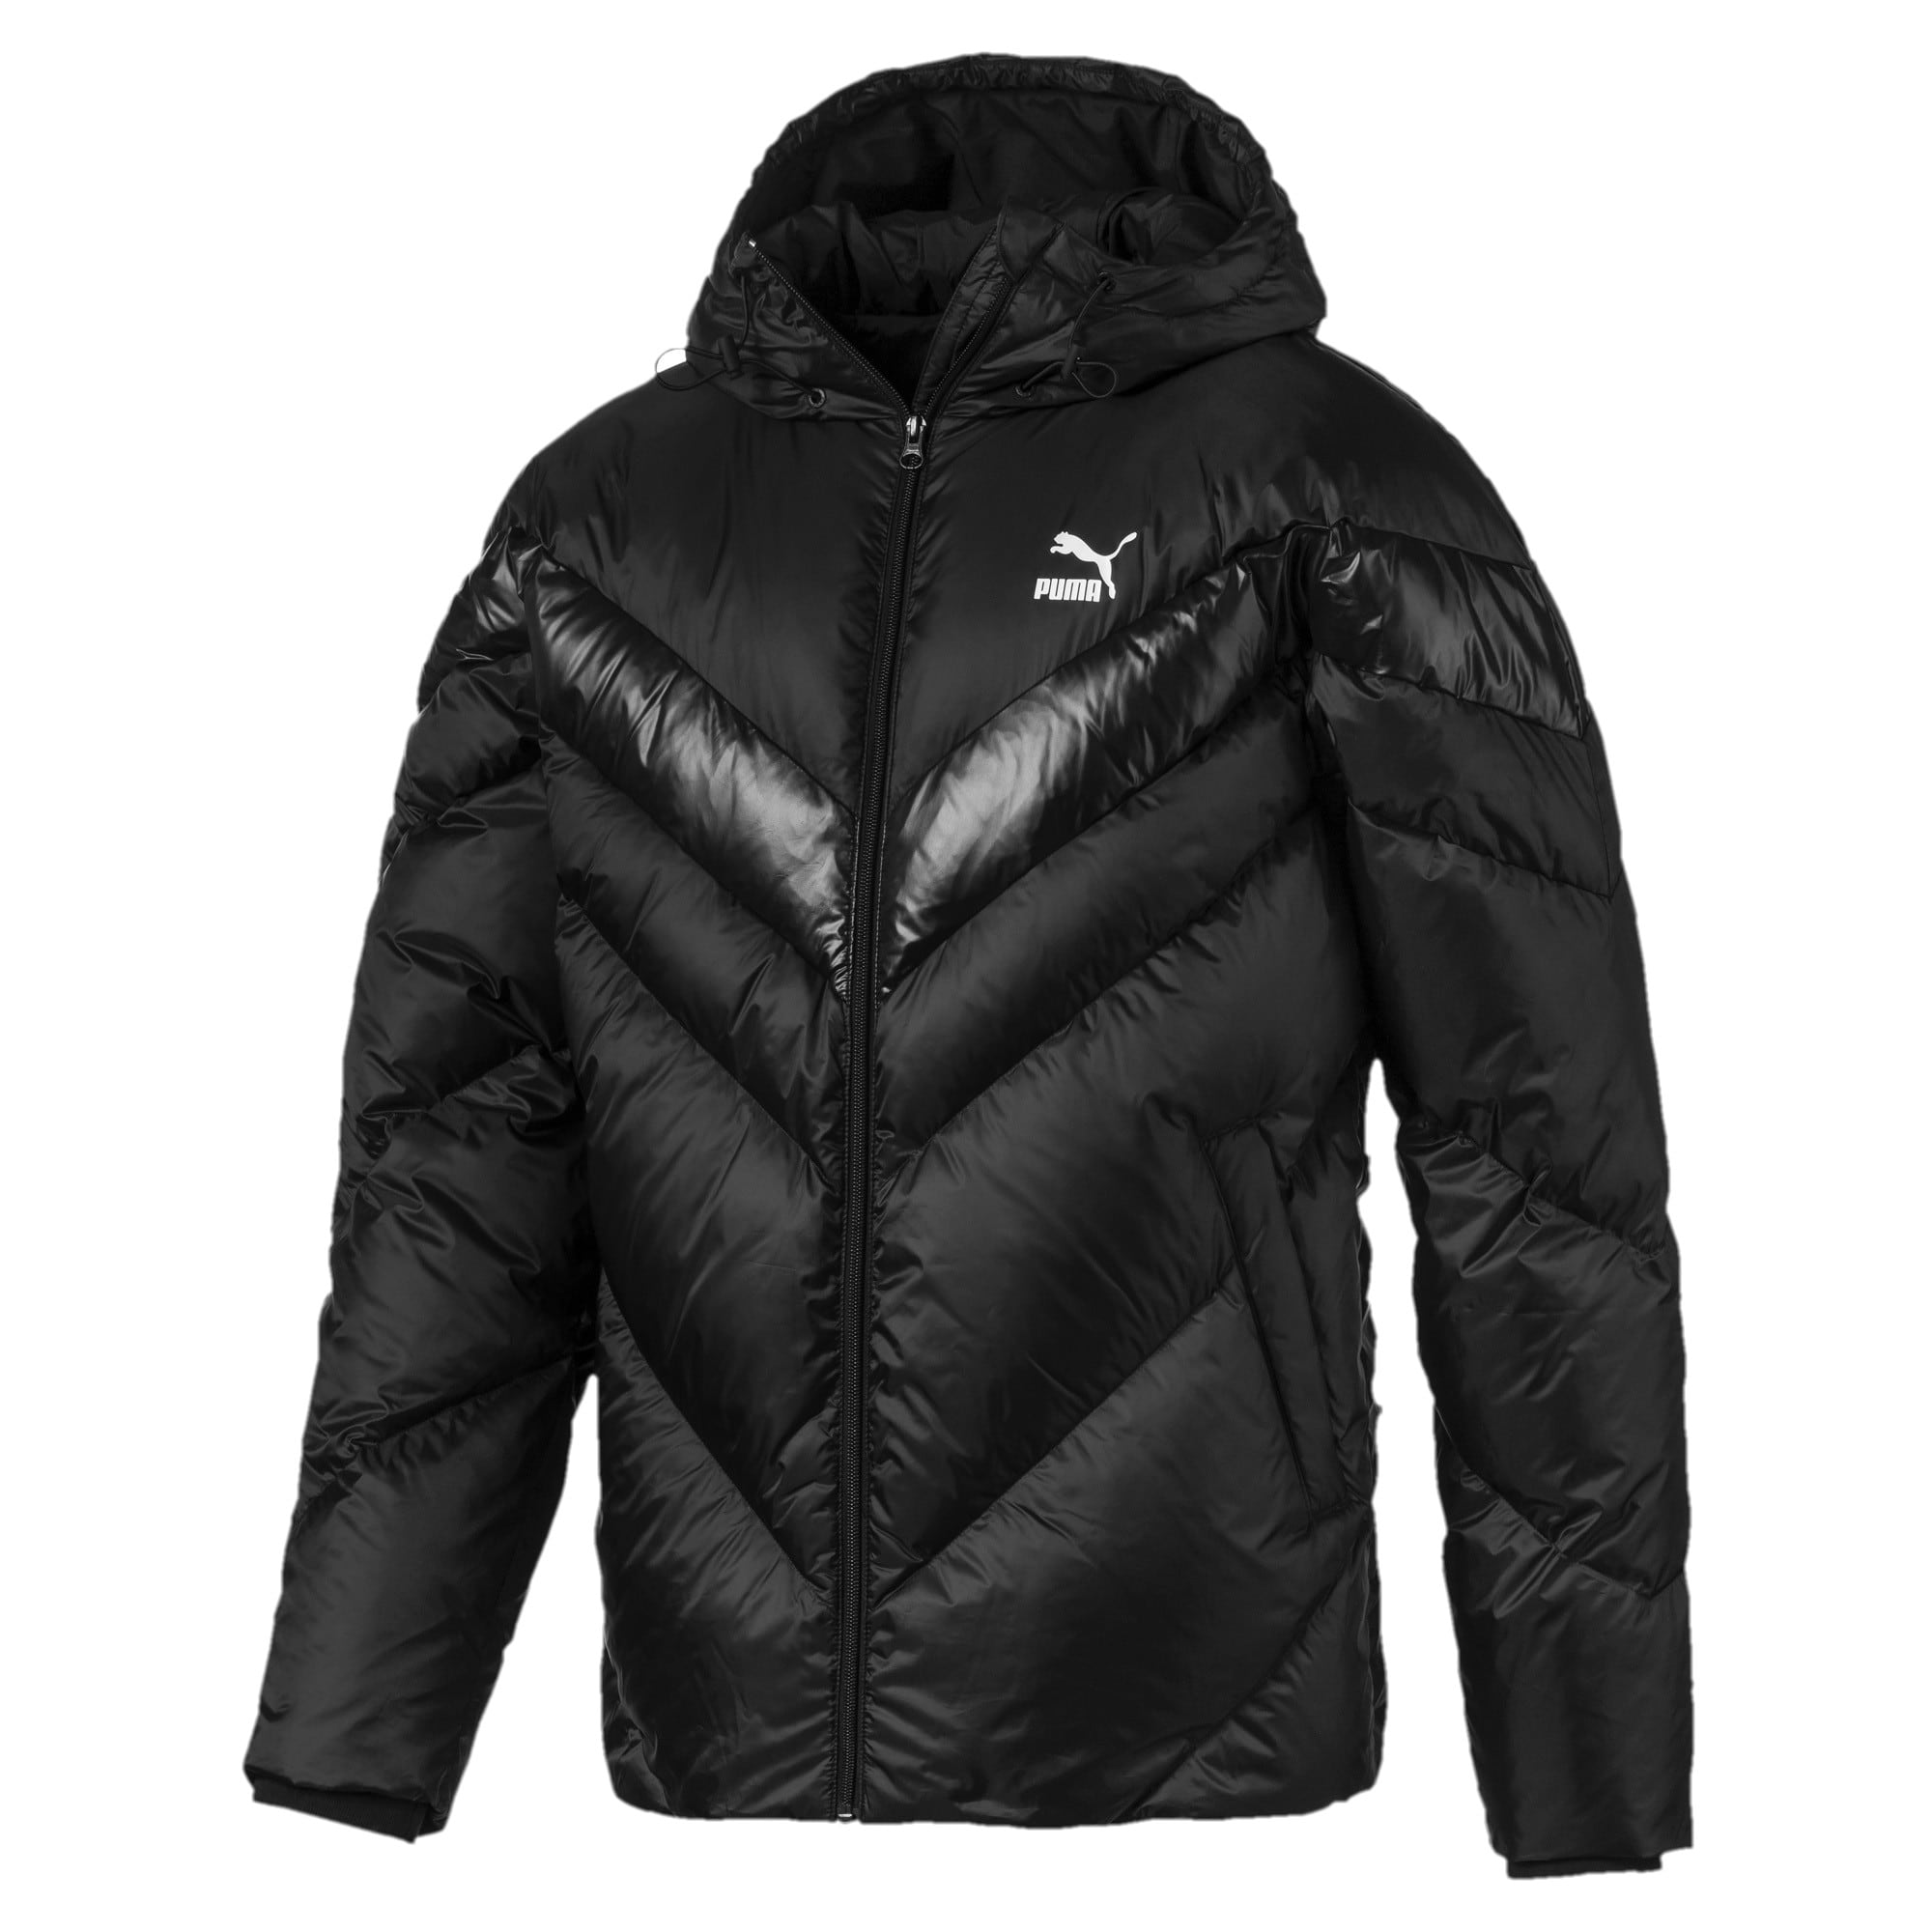 Thumbnail 1 of MCS Shiny Hooded Men's Puffer Down Jacket, Puma Black, medium